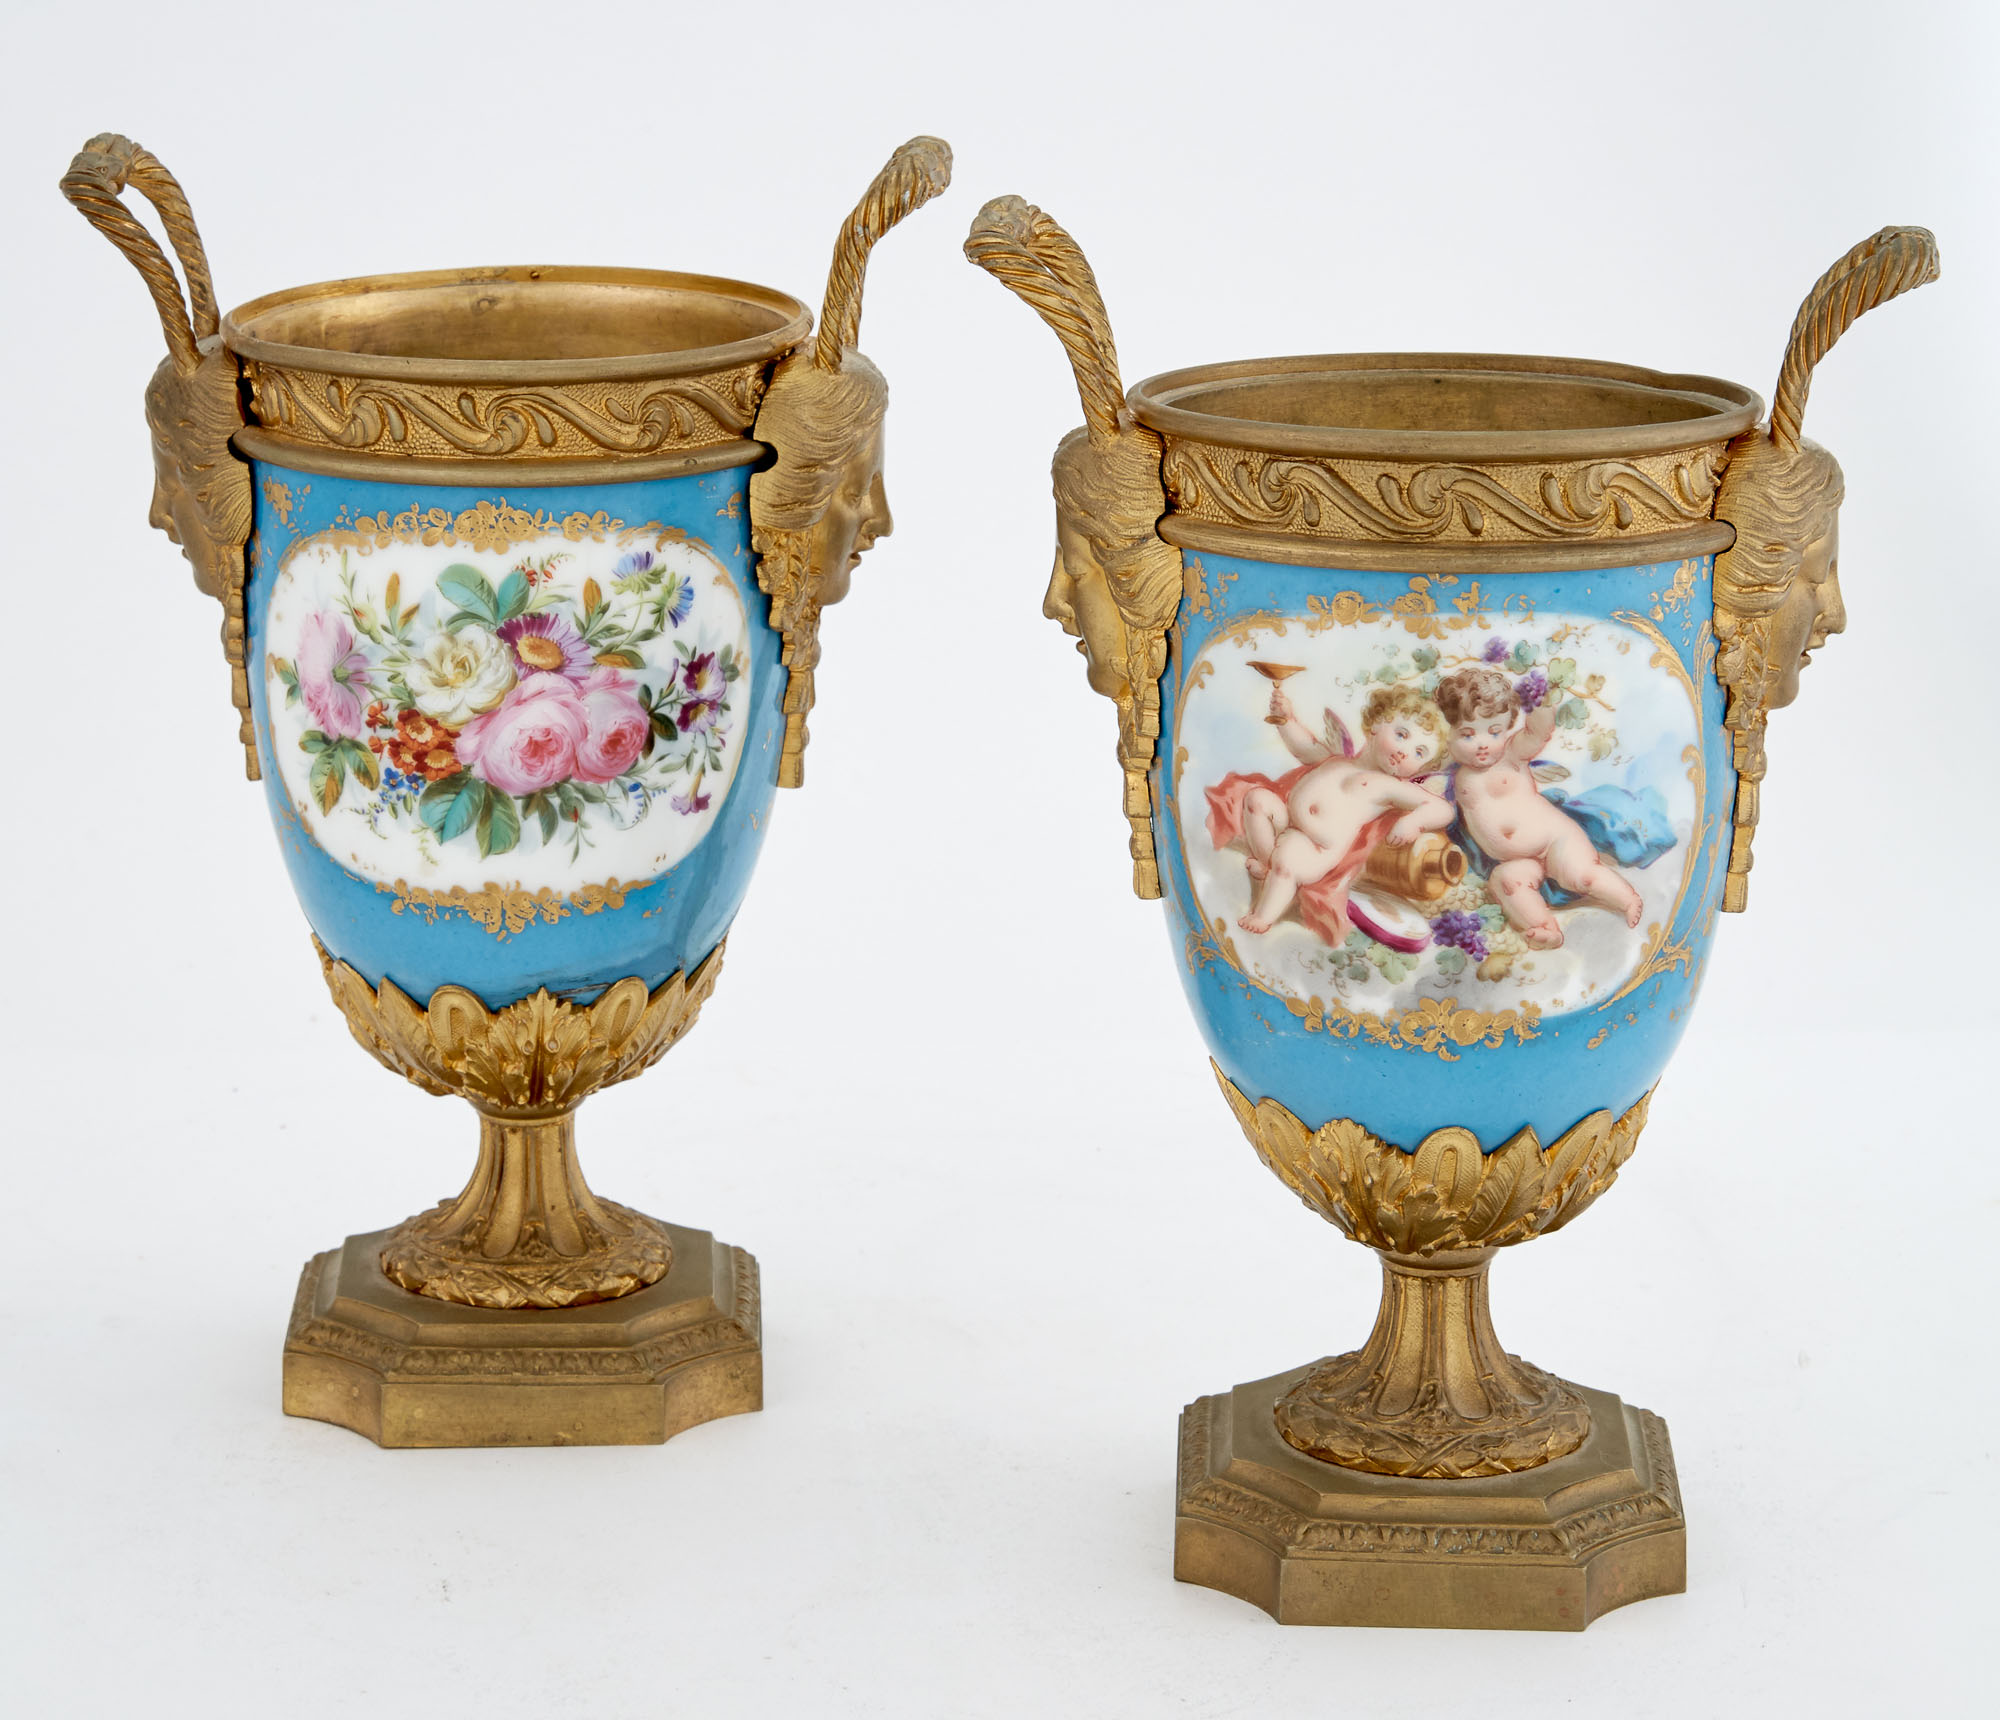 Lot image - Pair of Gilt-Metal Mounted Sèvres Style  Turquoise Ground Porcelain Garniture Two-Handled Urns